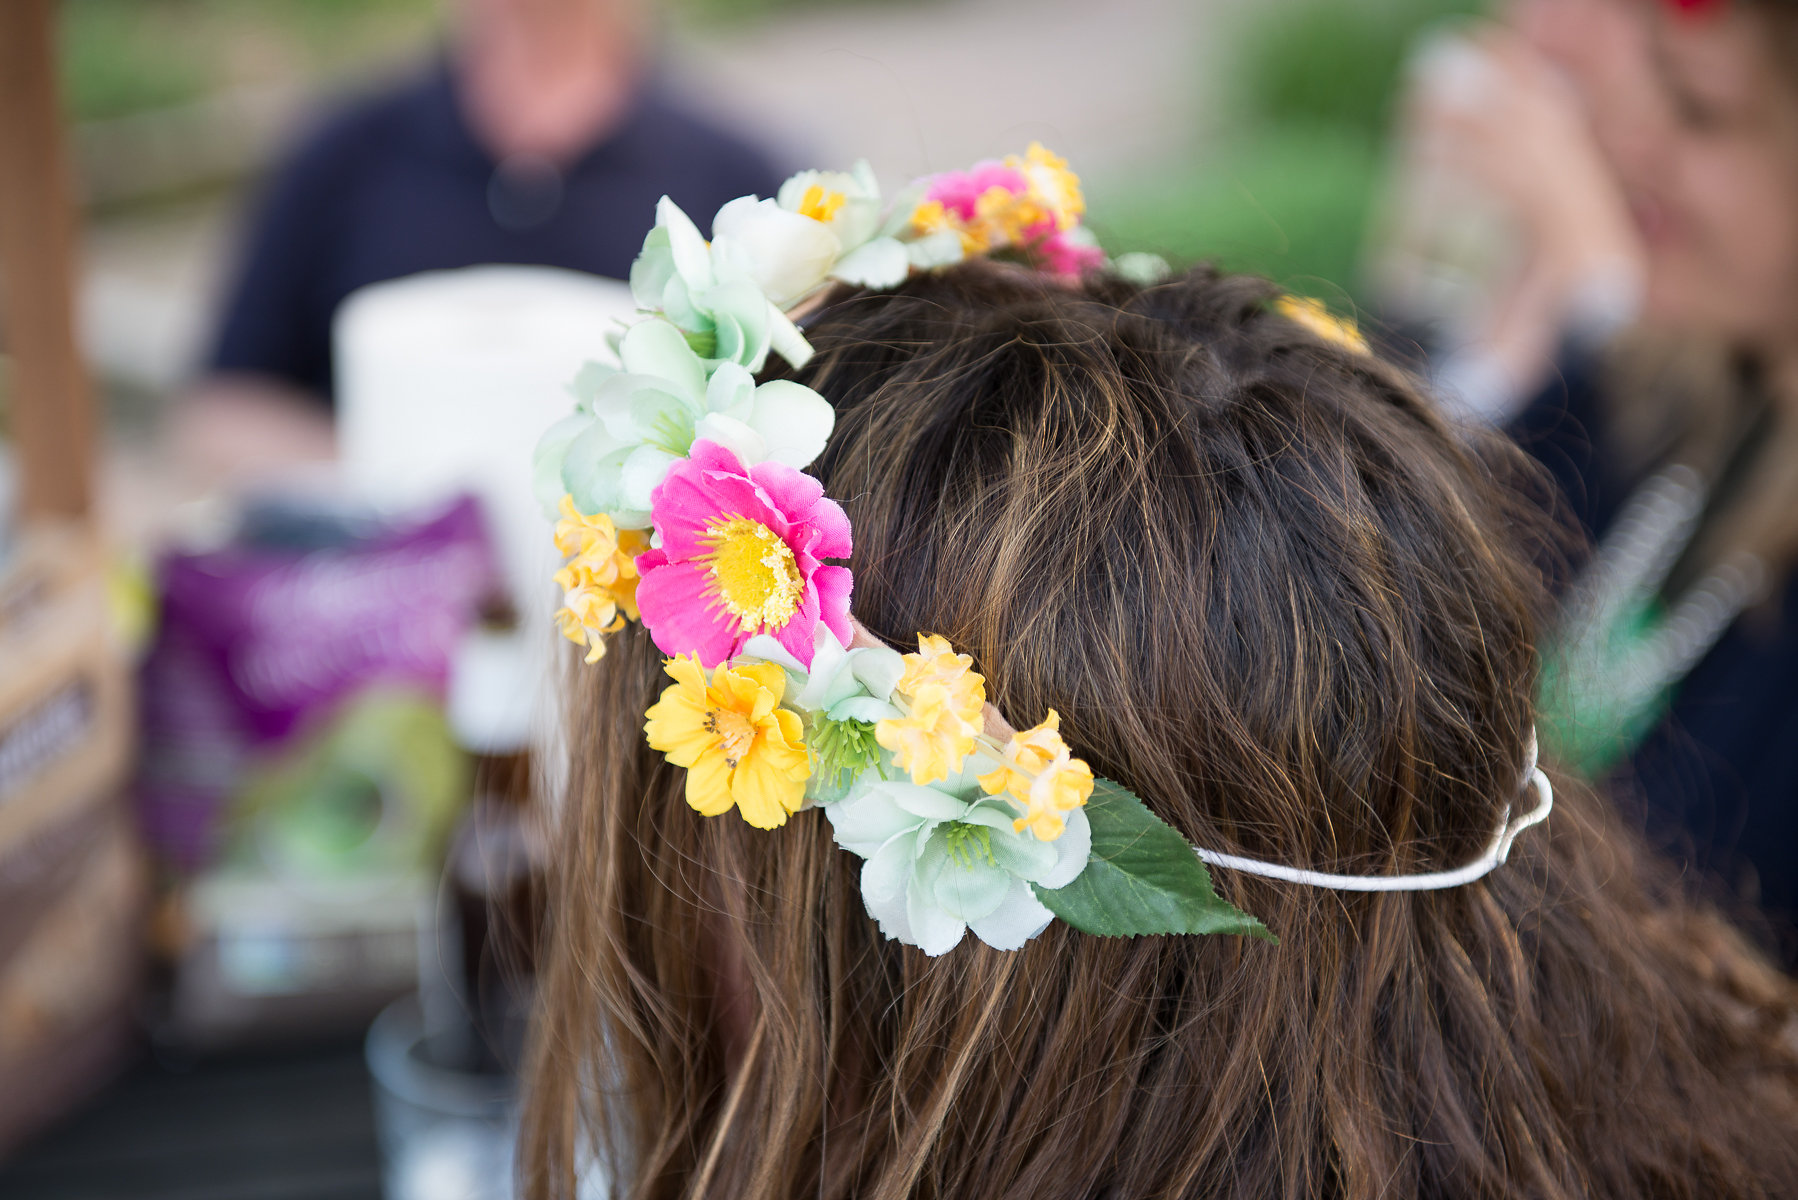 Jessica not only made flower crowns for everyone, but took all the pics. She is amazing.